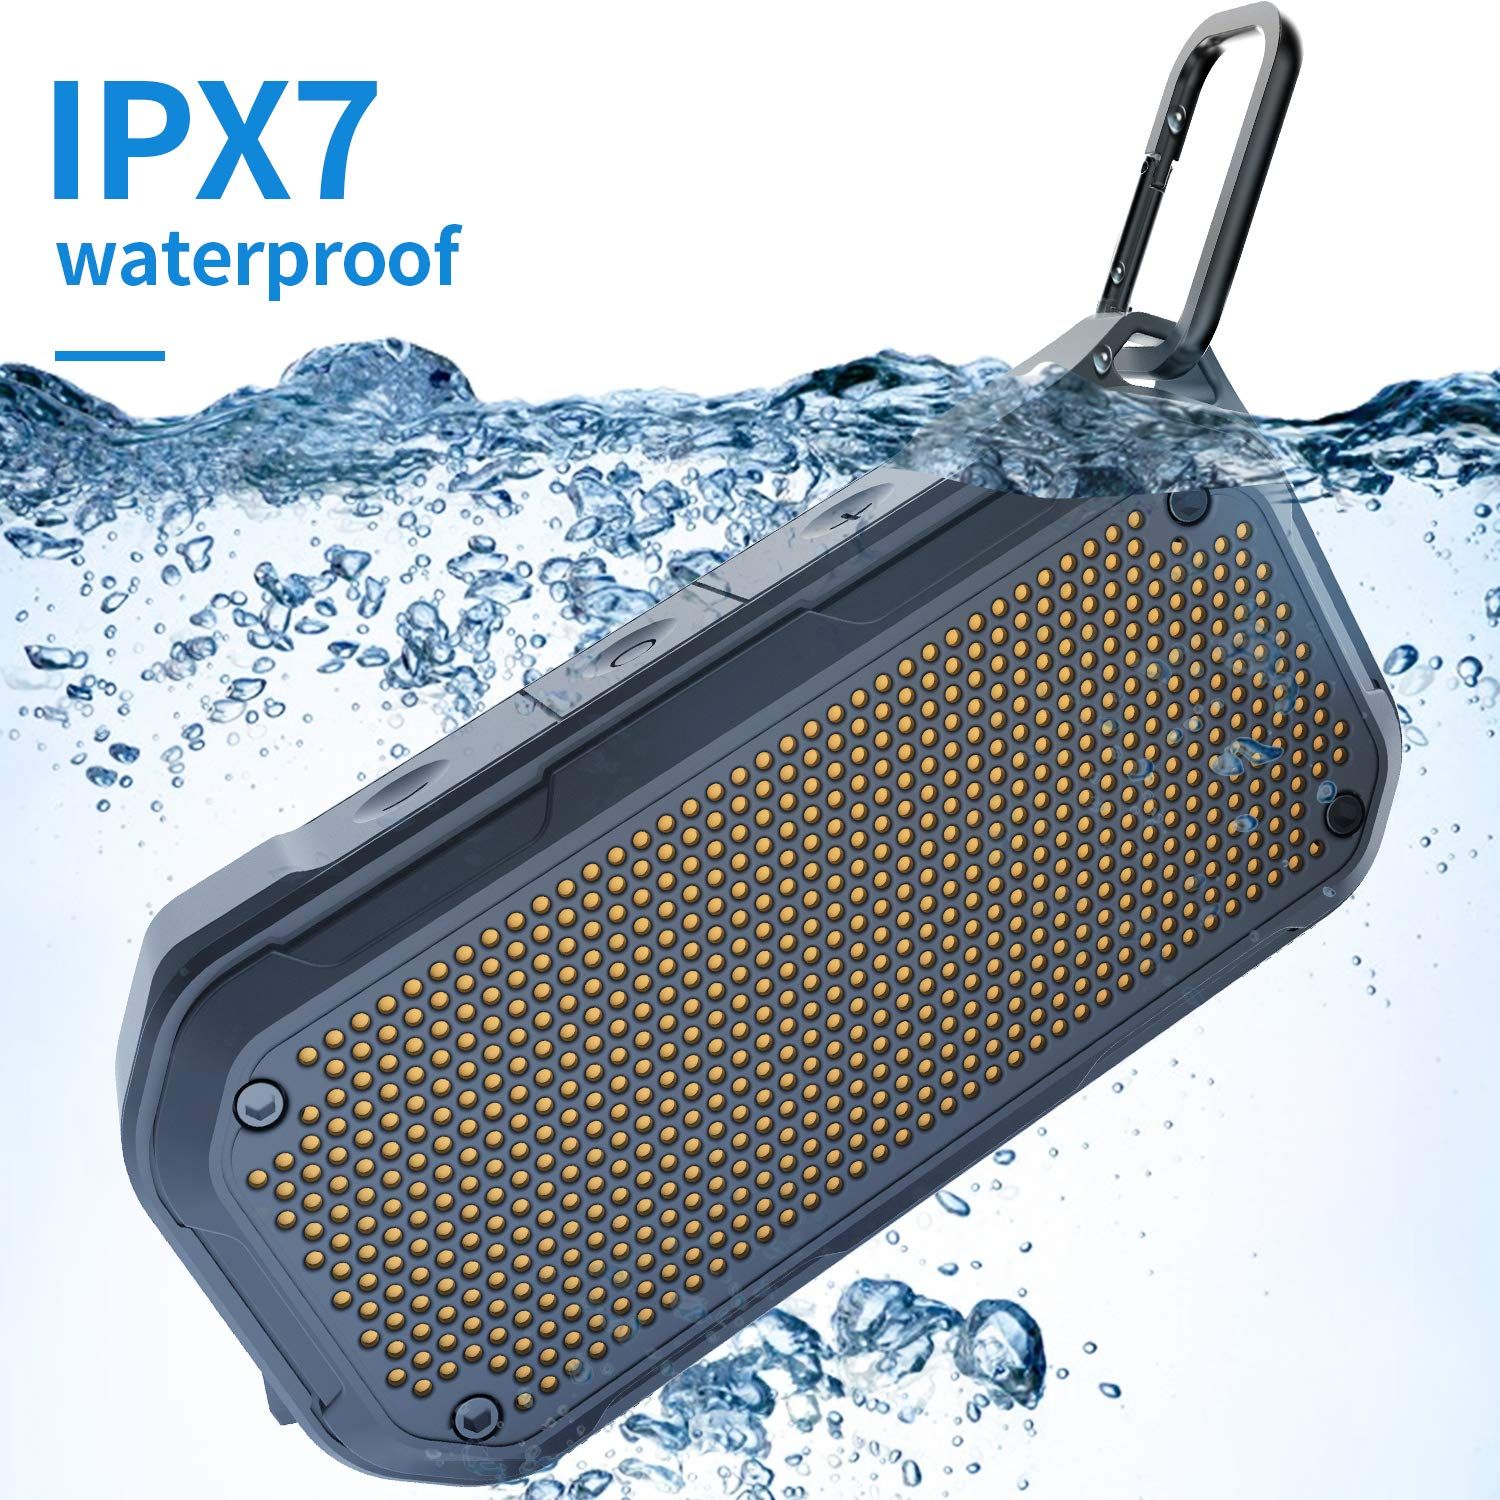 IPX7 Waterproof Speaker Bluetooth Wireless Portable Shower Speaker Outdoor Speakers 8-Hour Playtime with Mic AUX TF Card Supported for Bathtub Pool Kayaking Beach Seashore Party Climbing Travel AUDIIOO